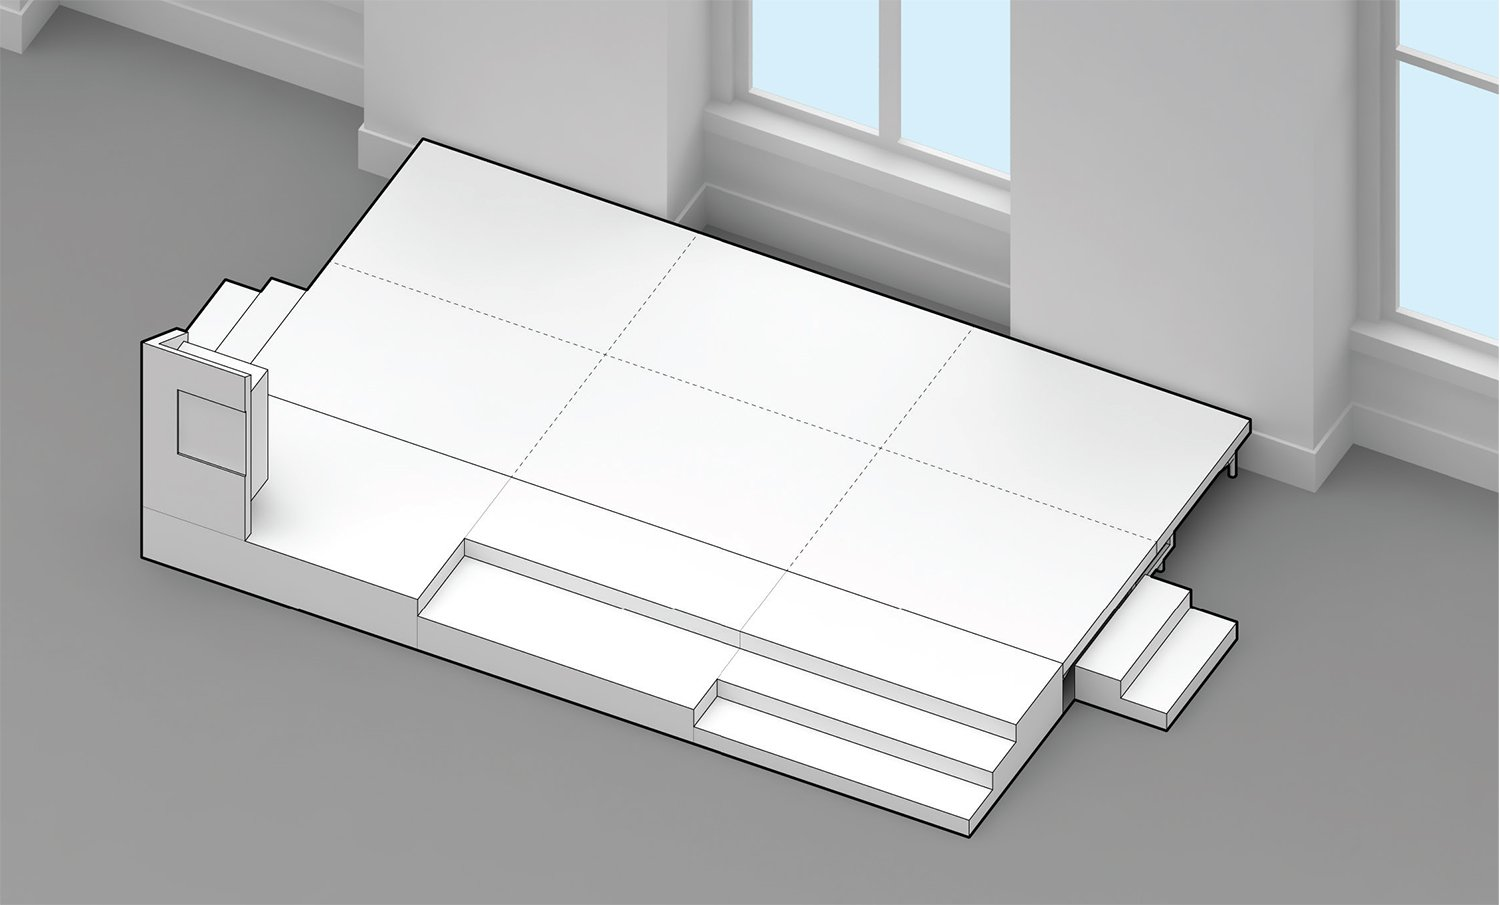 Stage configurations LTL Architects}